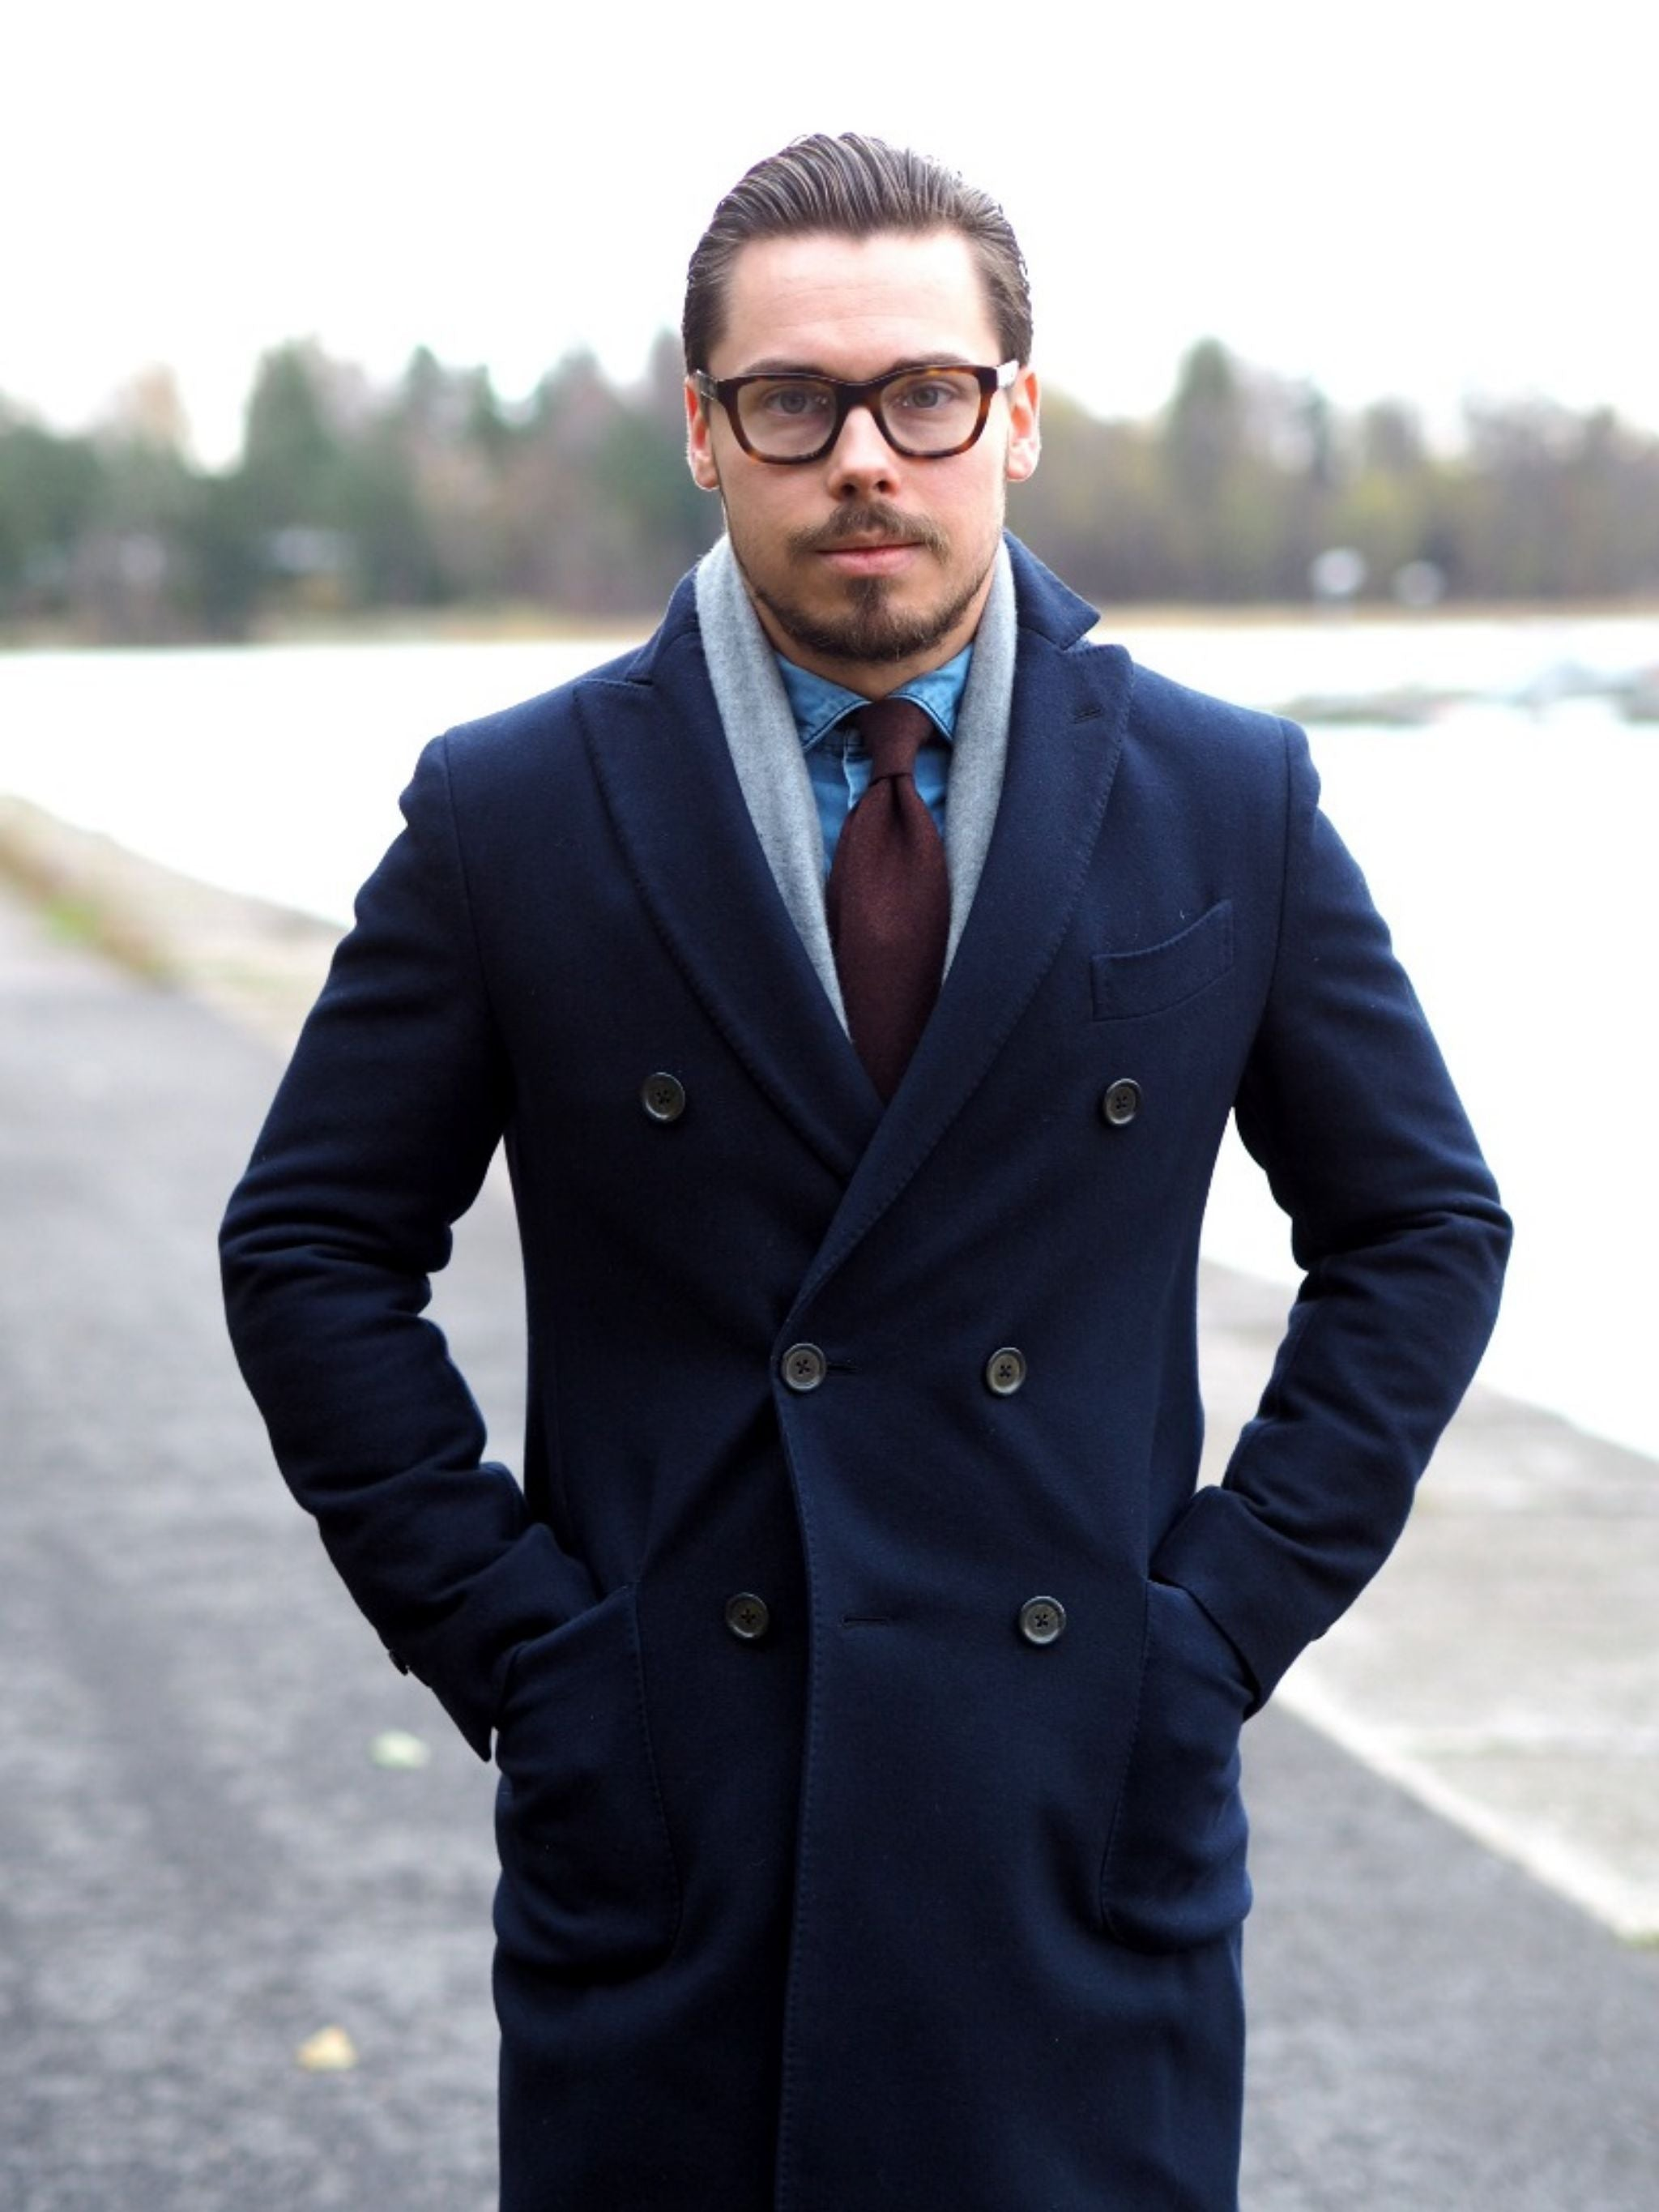 Autumnal business casual outfits - navy wool overcoat with gray cashmere scarf